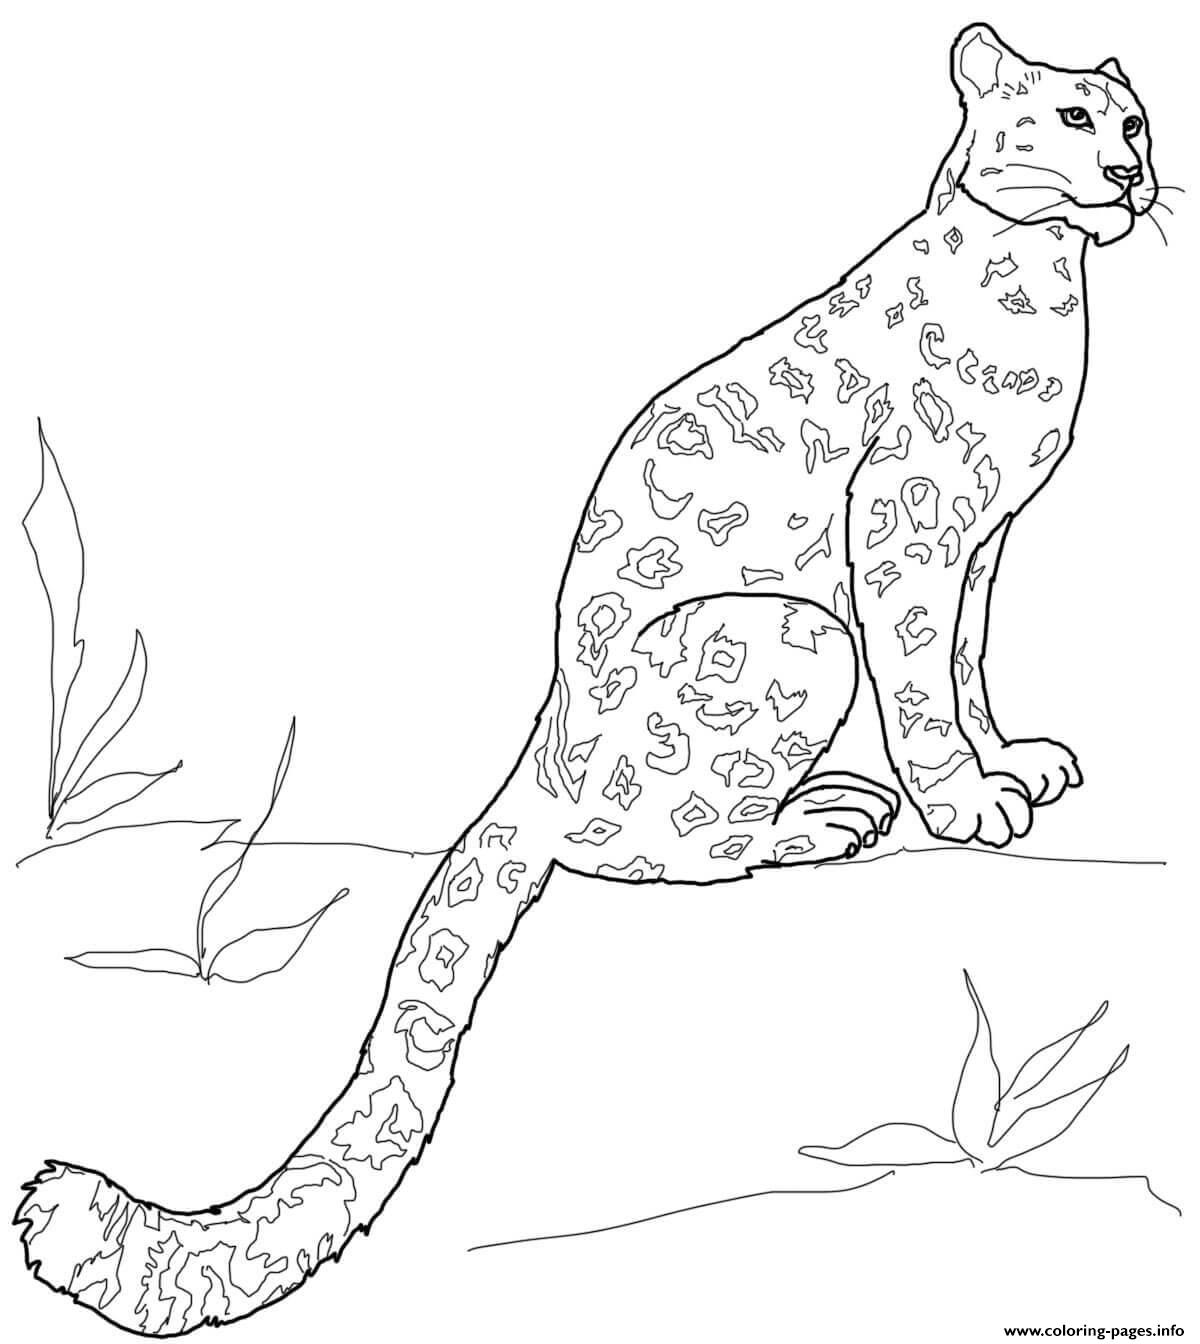 Snow Leopard Sitting Coloring Pages Printable